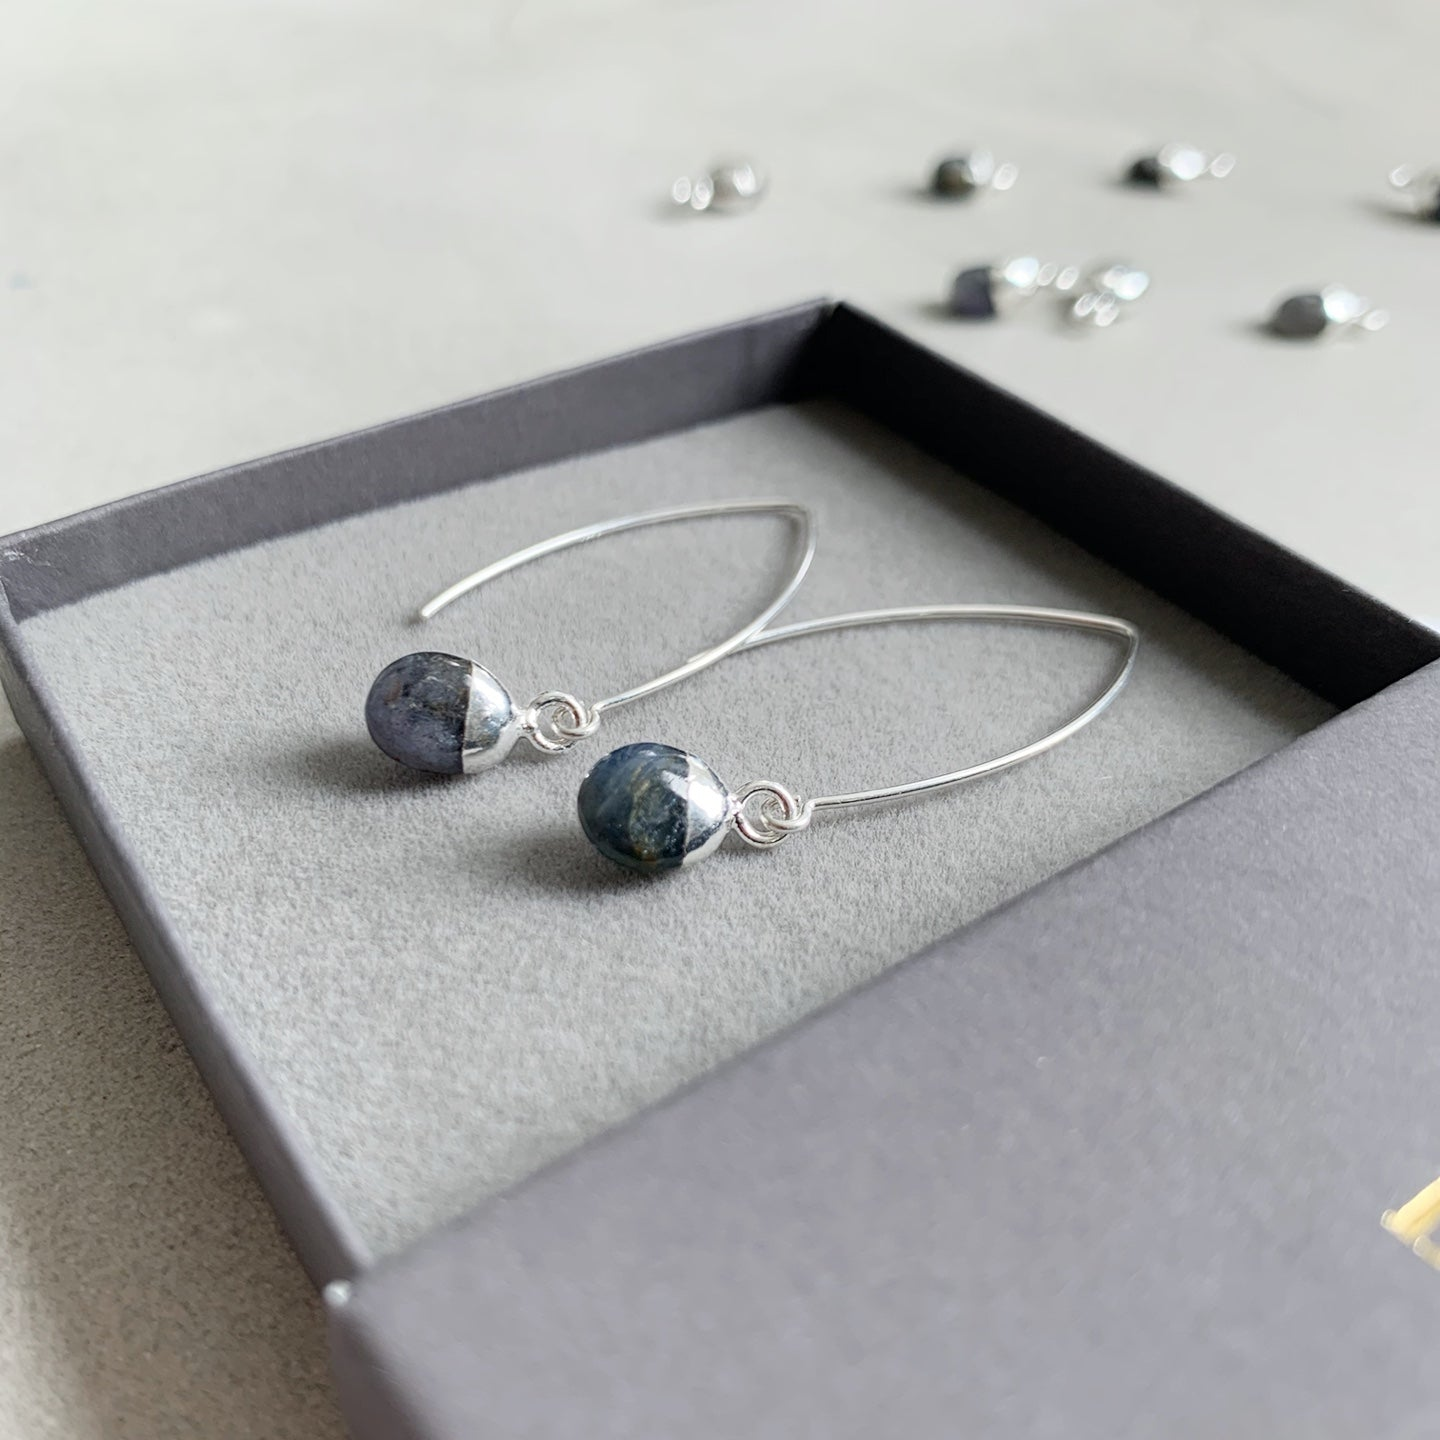 Tiny Tumbled Gemstone Dropper Earrings - Sterling Silver - SEPTEMBER, Sapphire - Decadorn